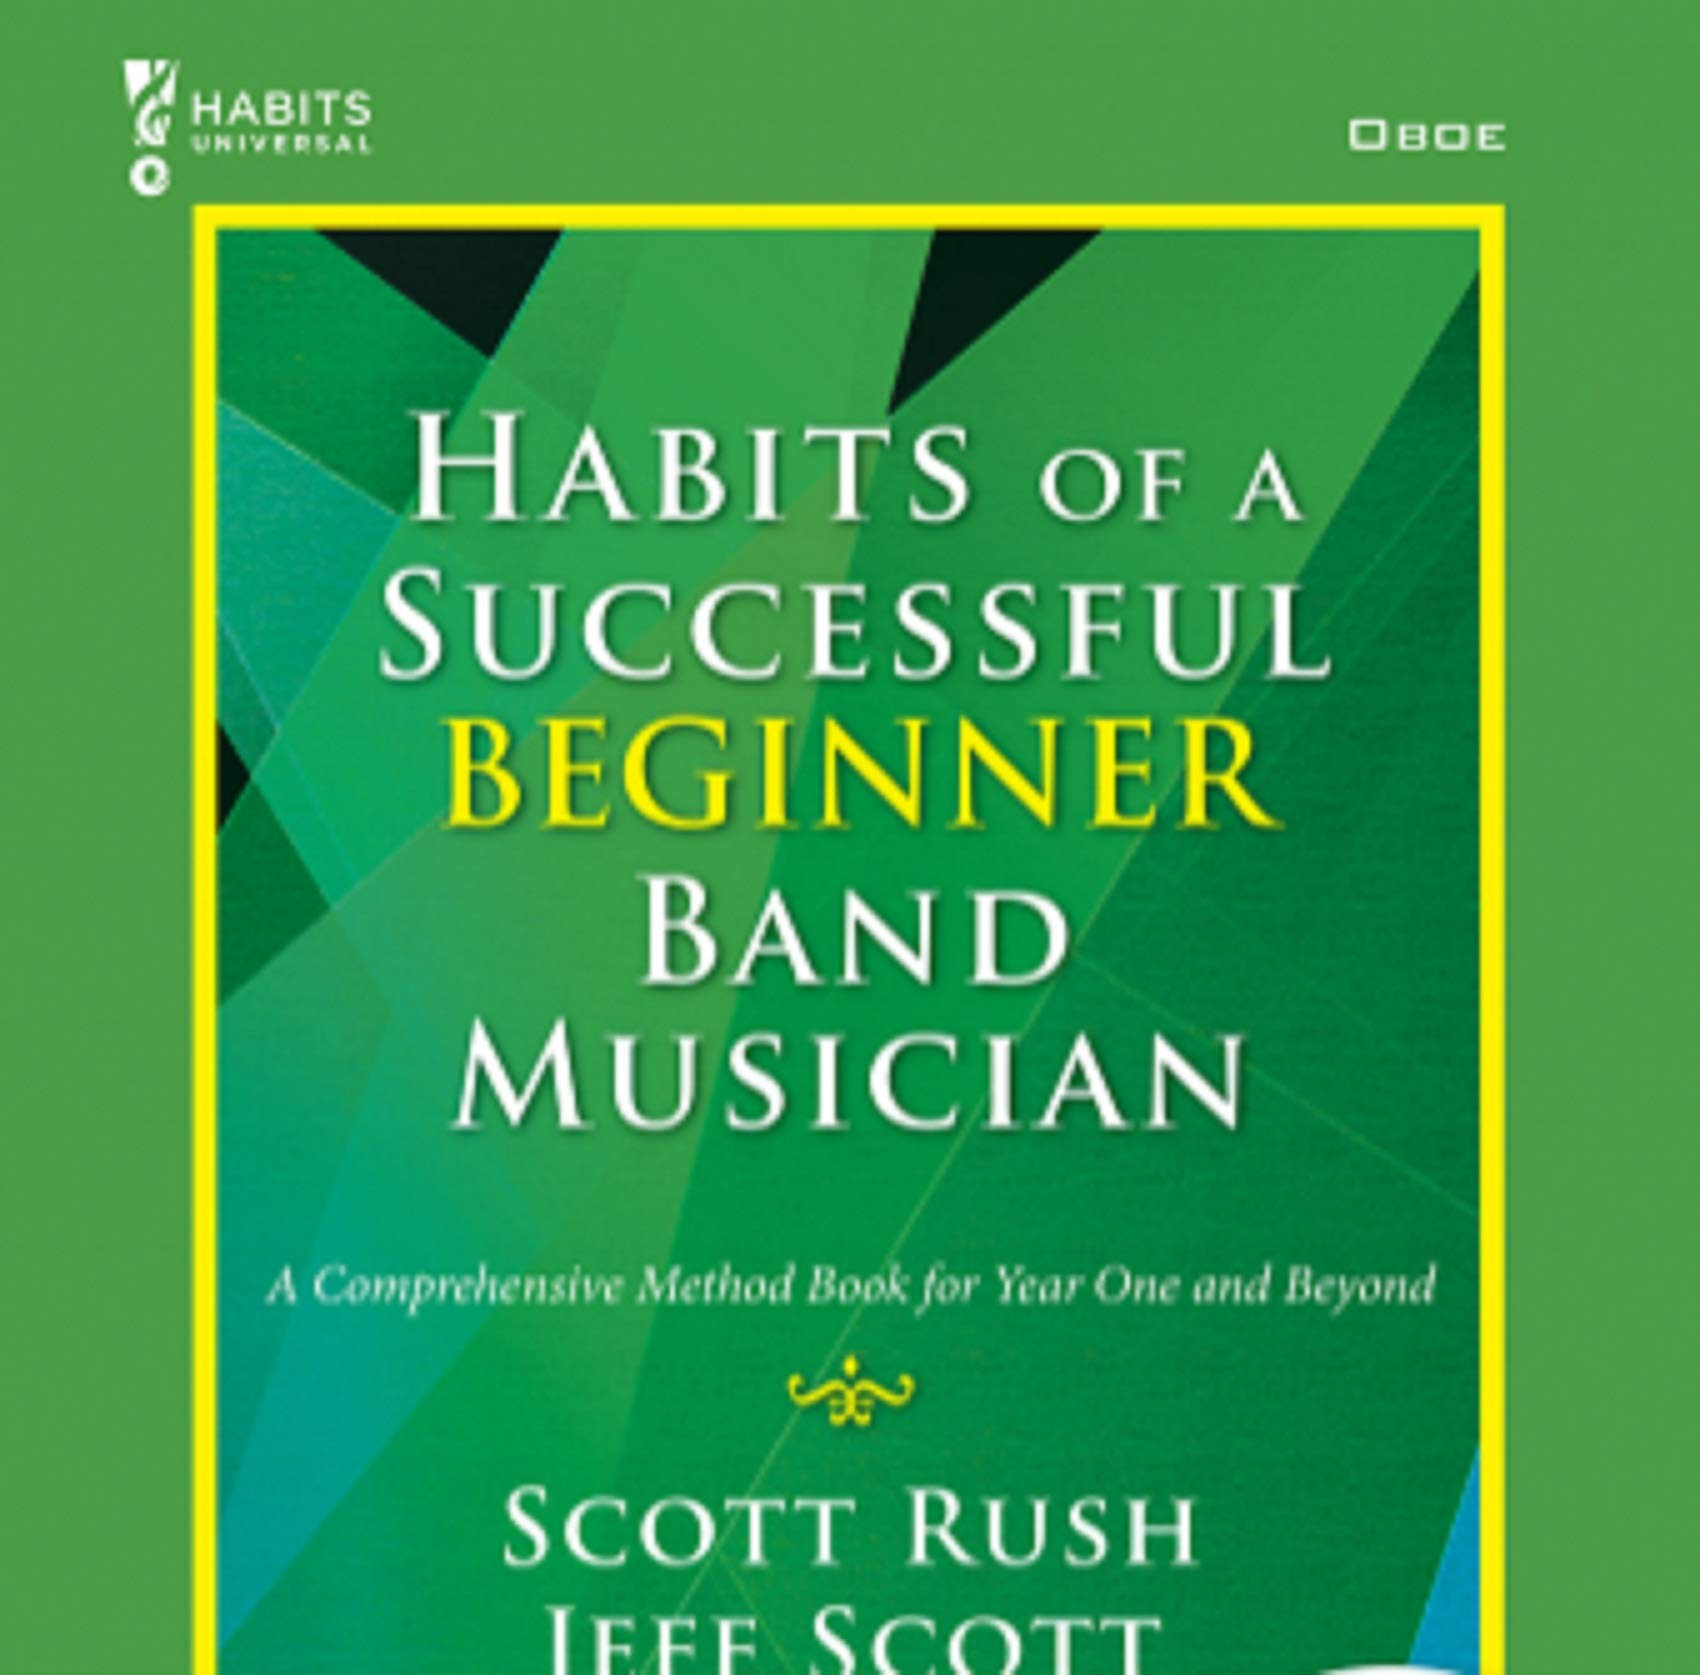 Habits of a Successful Beginner Band Musician - Oboe A Comprehensive Method Book for Year One and Beyond